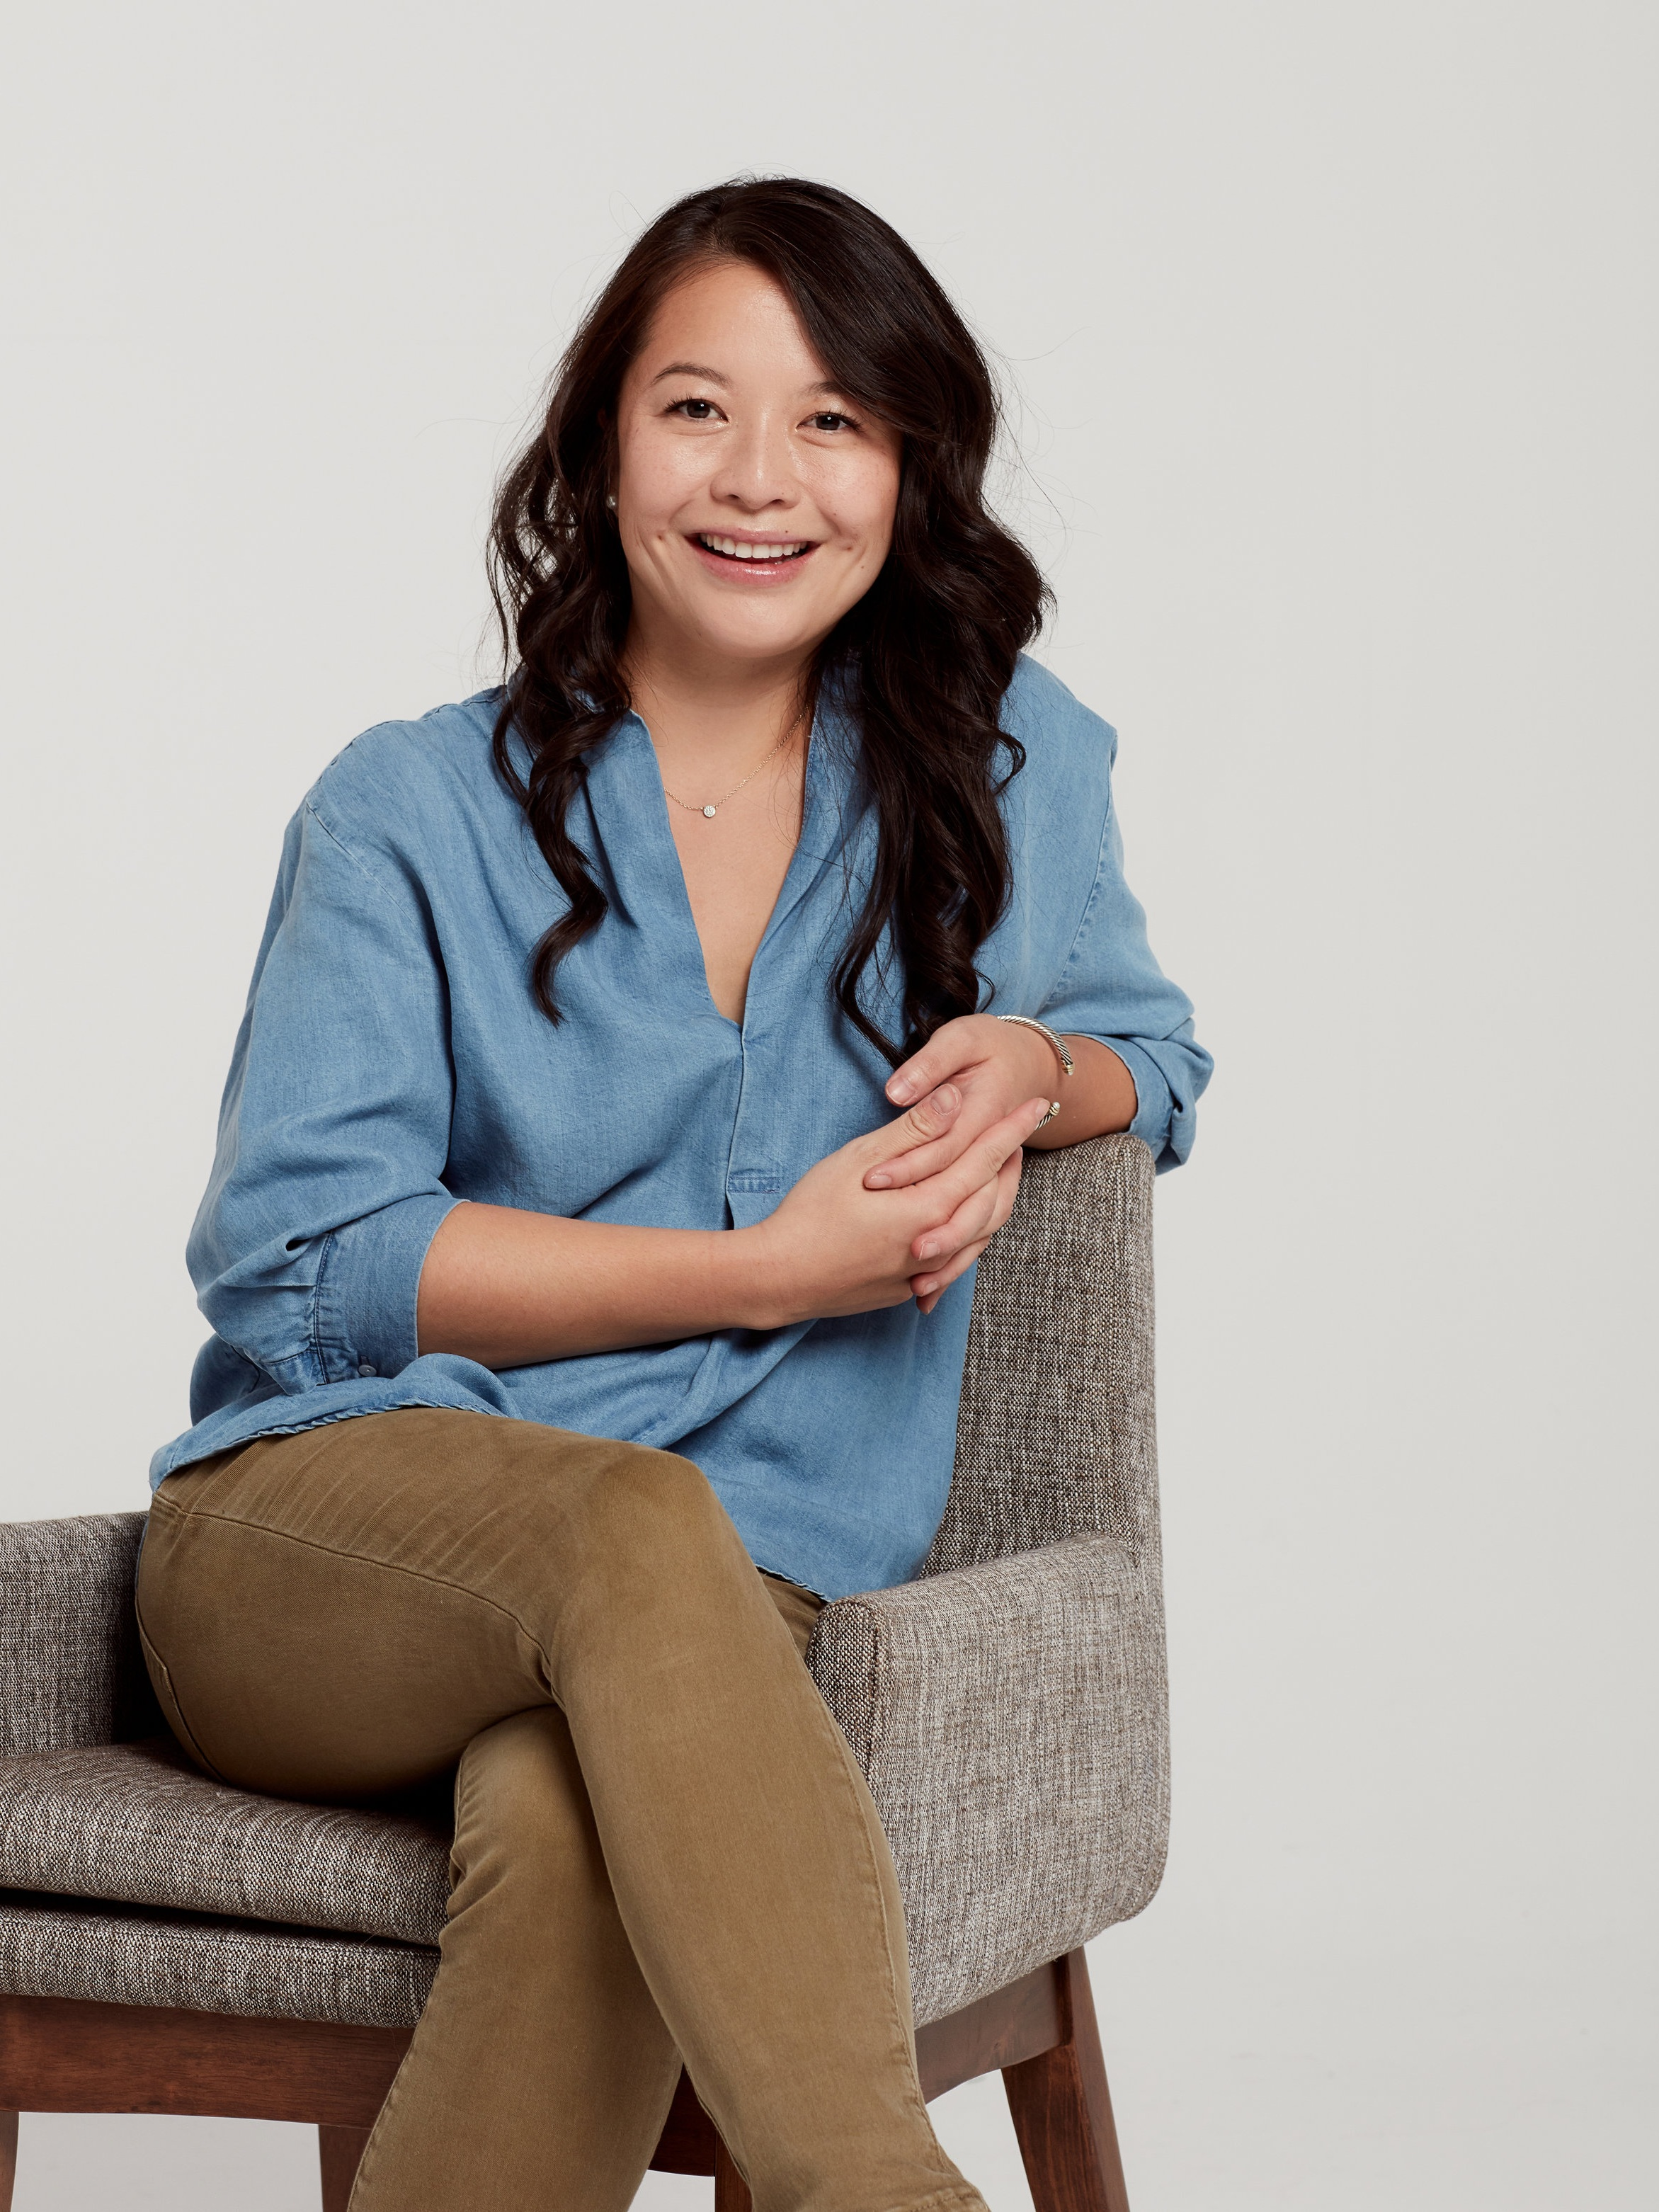 BRITTANY WONG - Founder, Bash + FETEHaving worked with a broad spectrum of brands + clients + produced a diverse range of events including P&G's Launch at CES, Turner Network's Upfront in NYC + OPRAH's Canadian Tour, Brittany has an eye for creating and building events that exceed clientele expectations and standards. With extensive project management skills, strong technical knowledge and a client-focused mentality, Brittany has a knack for thinking outside of the box to come up with one-of-a-kind creative concepts. From black-tie to tie-dye, Brittany lives up to her inadvertent titles of being the go-to-gal and make-it-happener for events of all shapes and sizes.